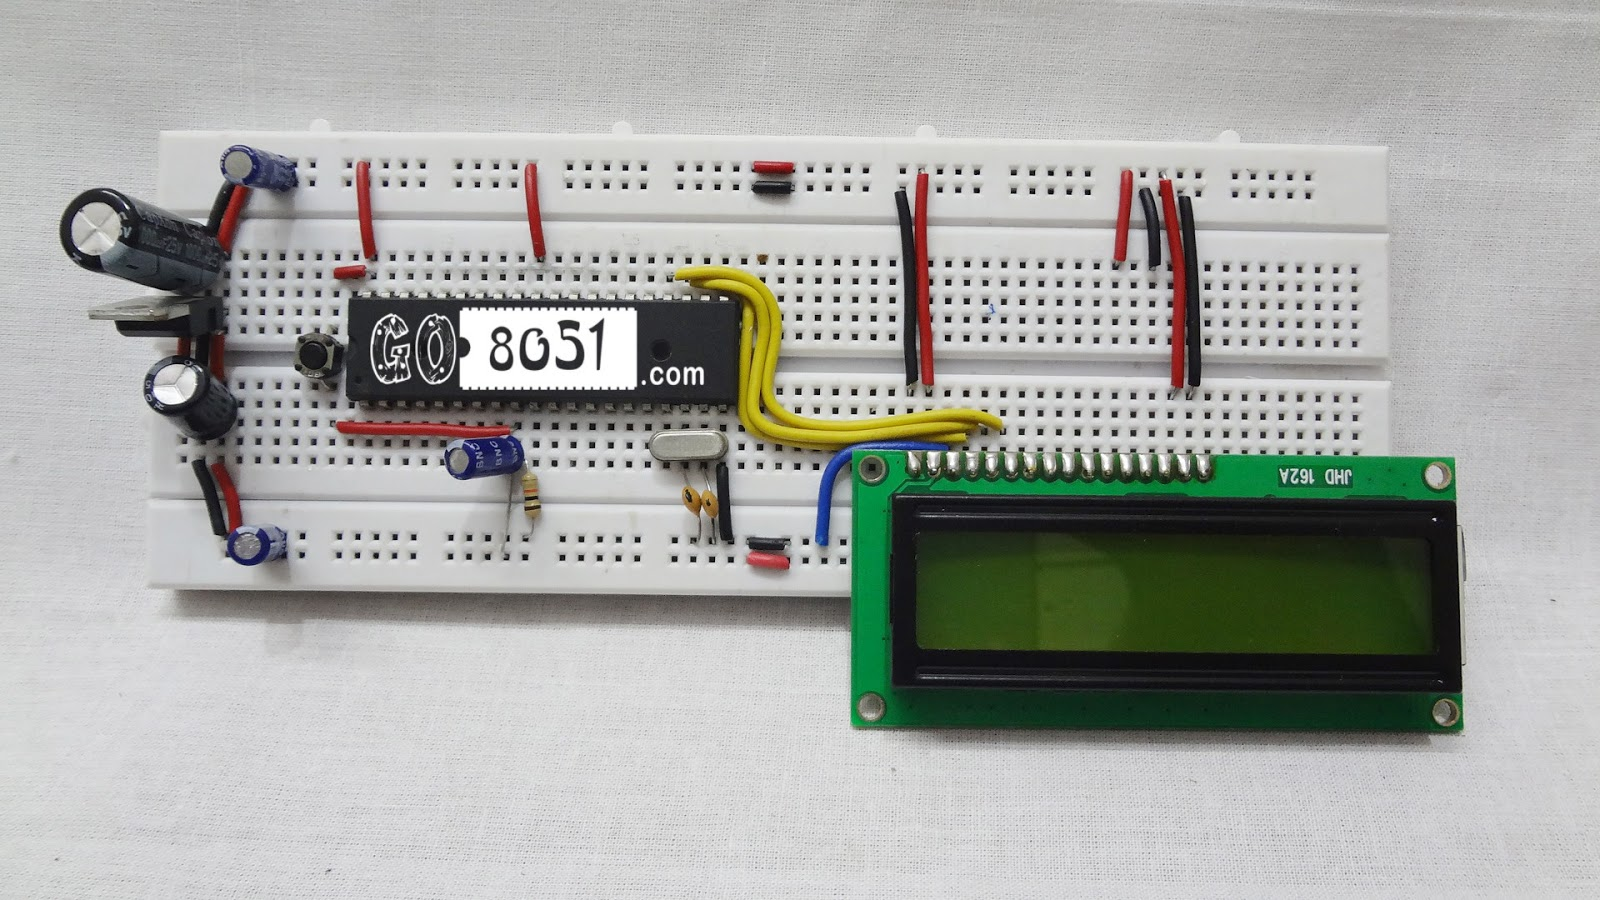 Chapter 11 4 - Interfacing 16x2 LCD with 8051